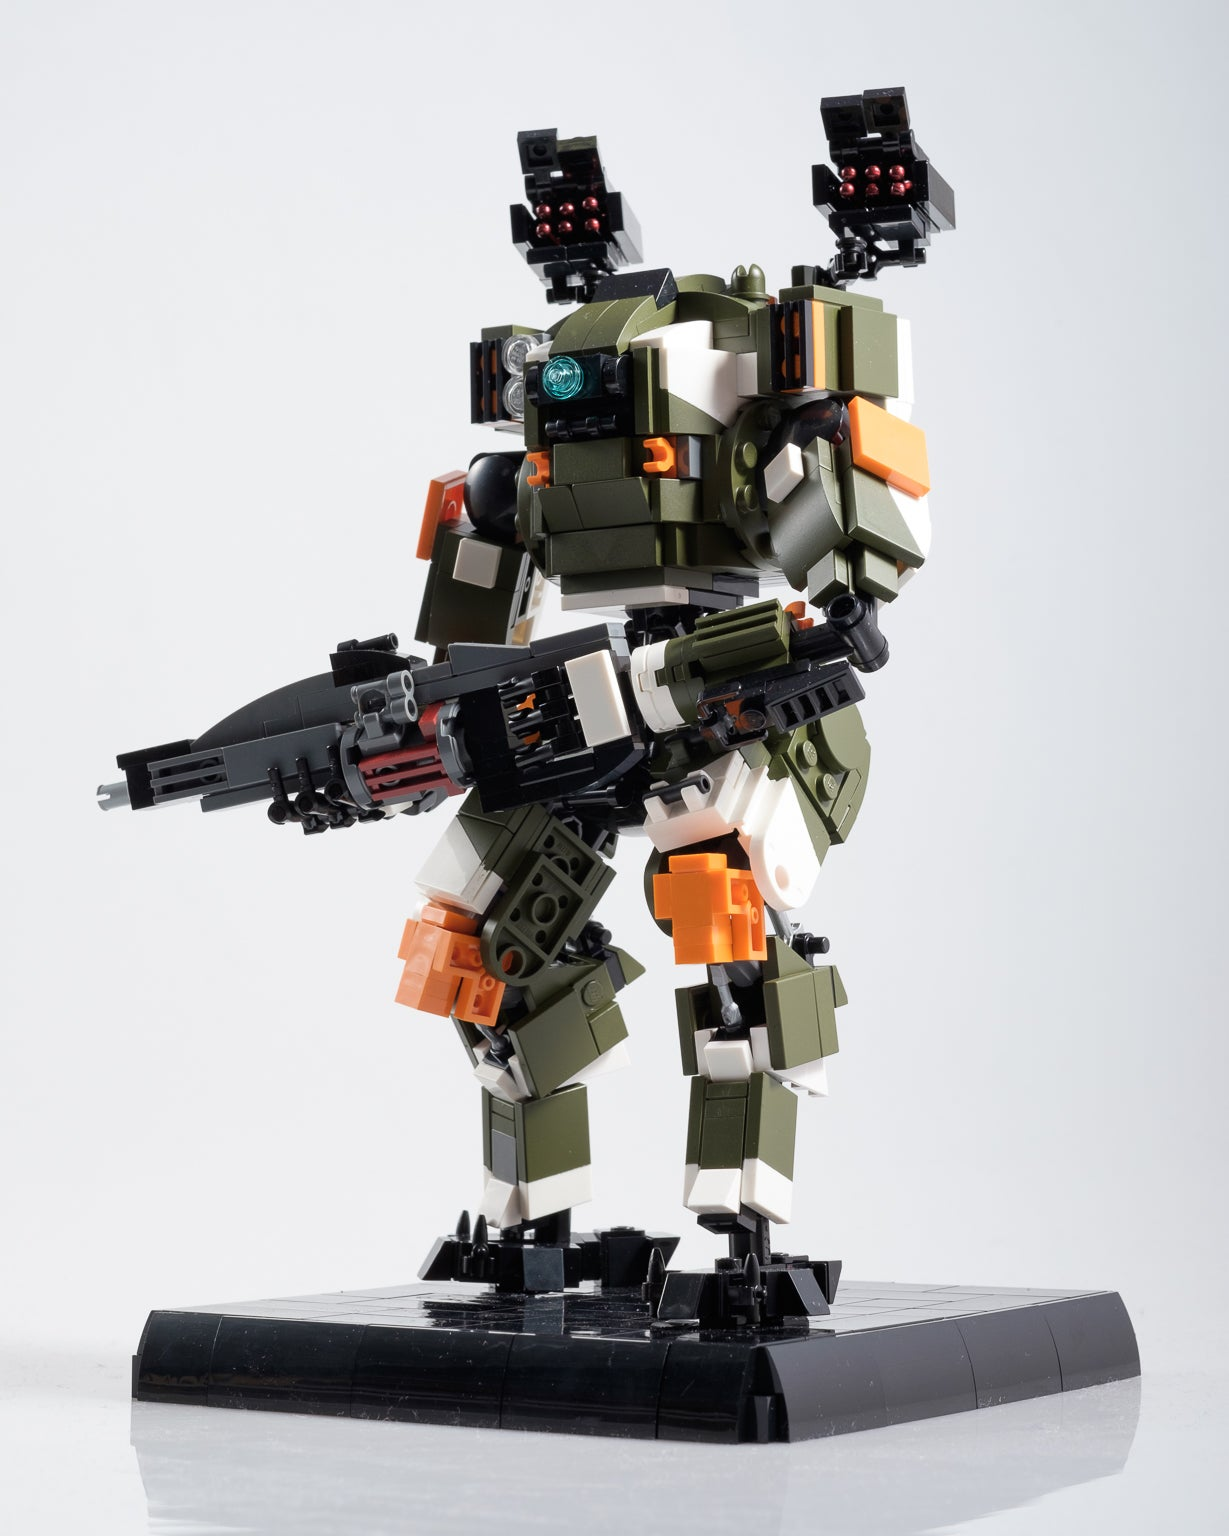 drone model kit with Custom Titanfall Lego Is Great on Lg 32 Inch Led Tv 32lf500b 2015 Model also Great Unclean One Greater Daemon Of Nurgle in addition Hammerpede in addition Sevastopol Station in addition Sci Fi Generator 257906773.